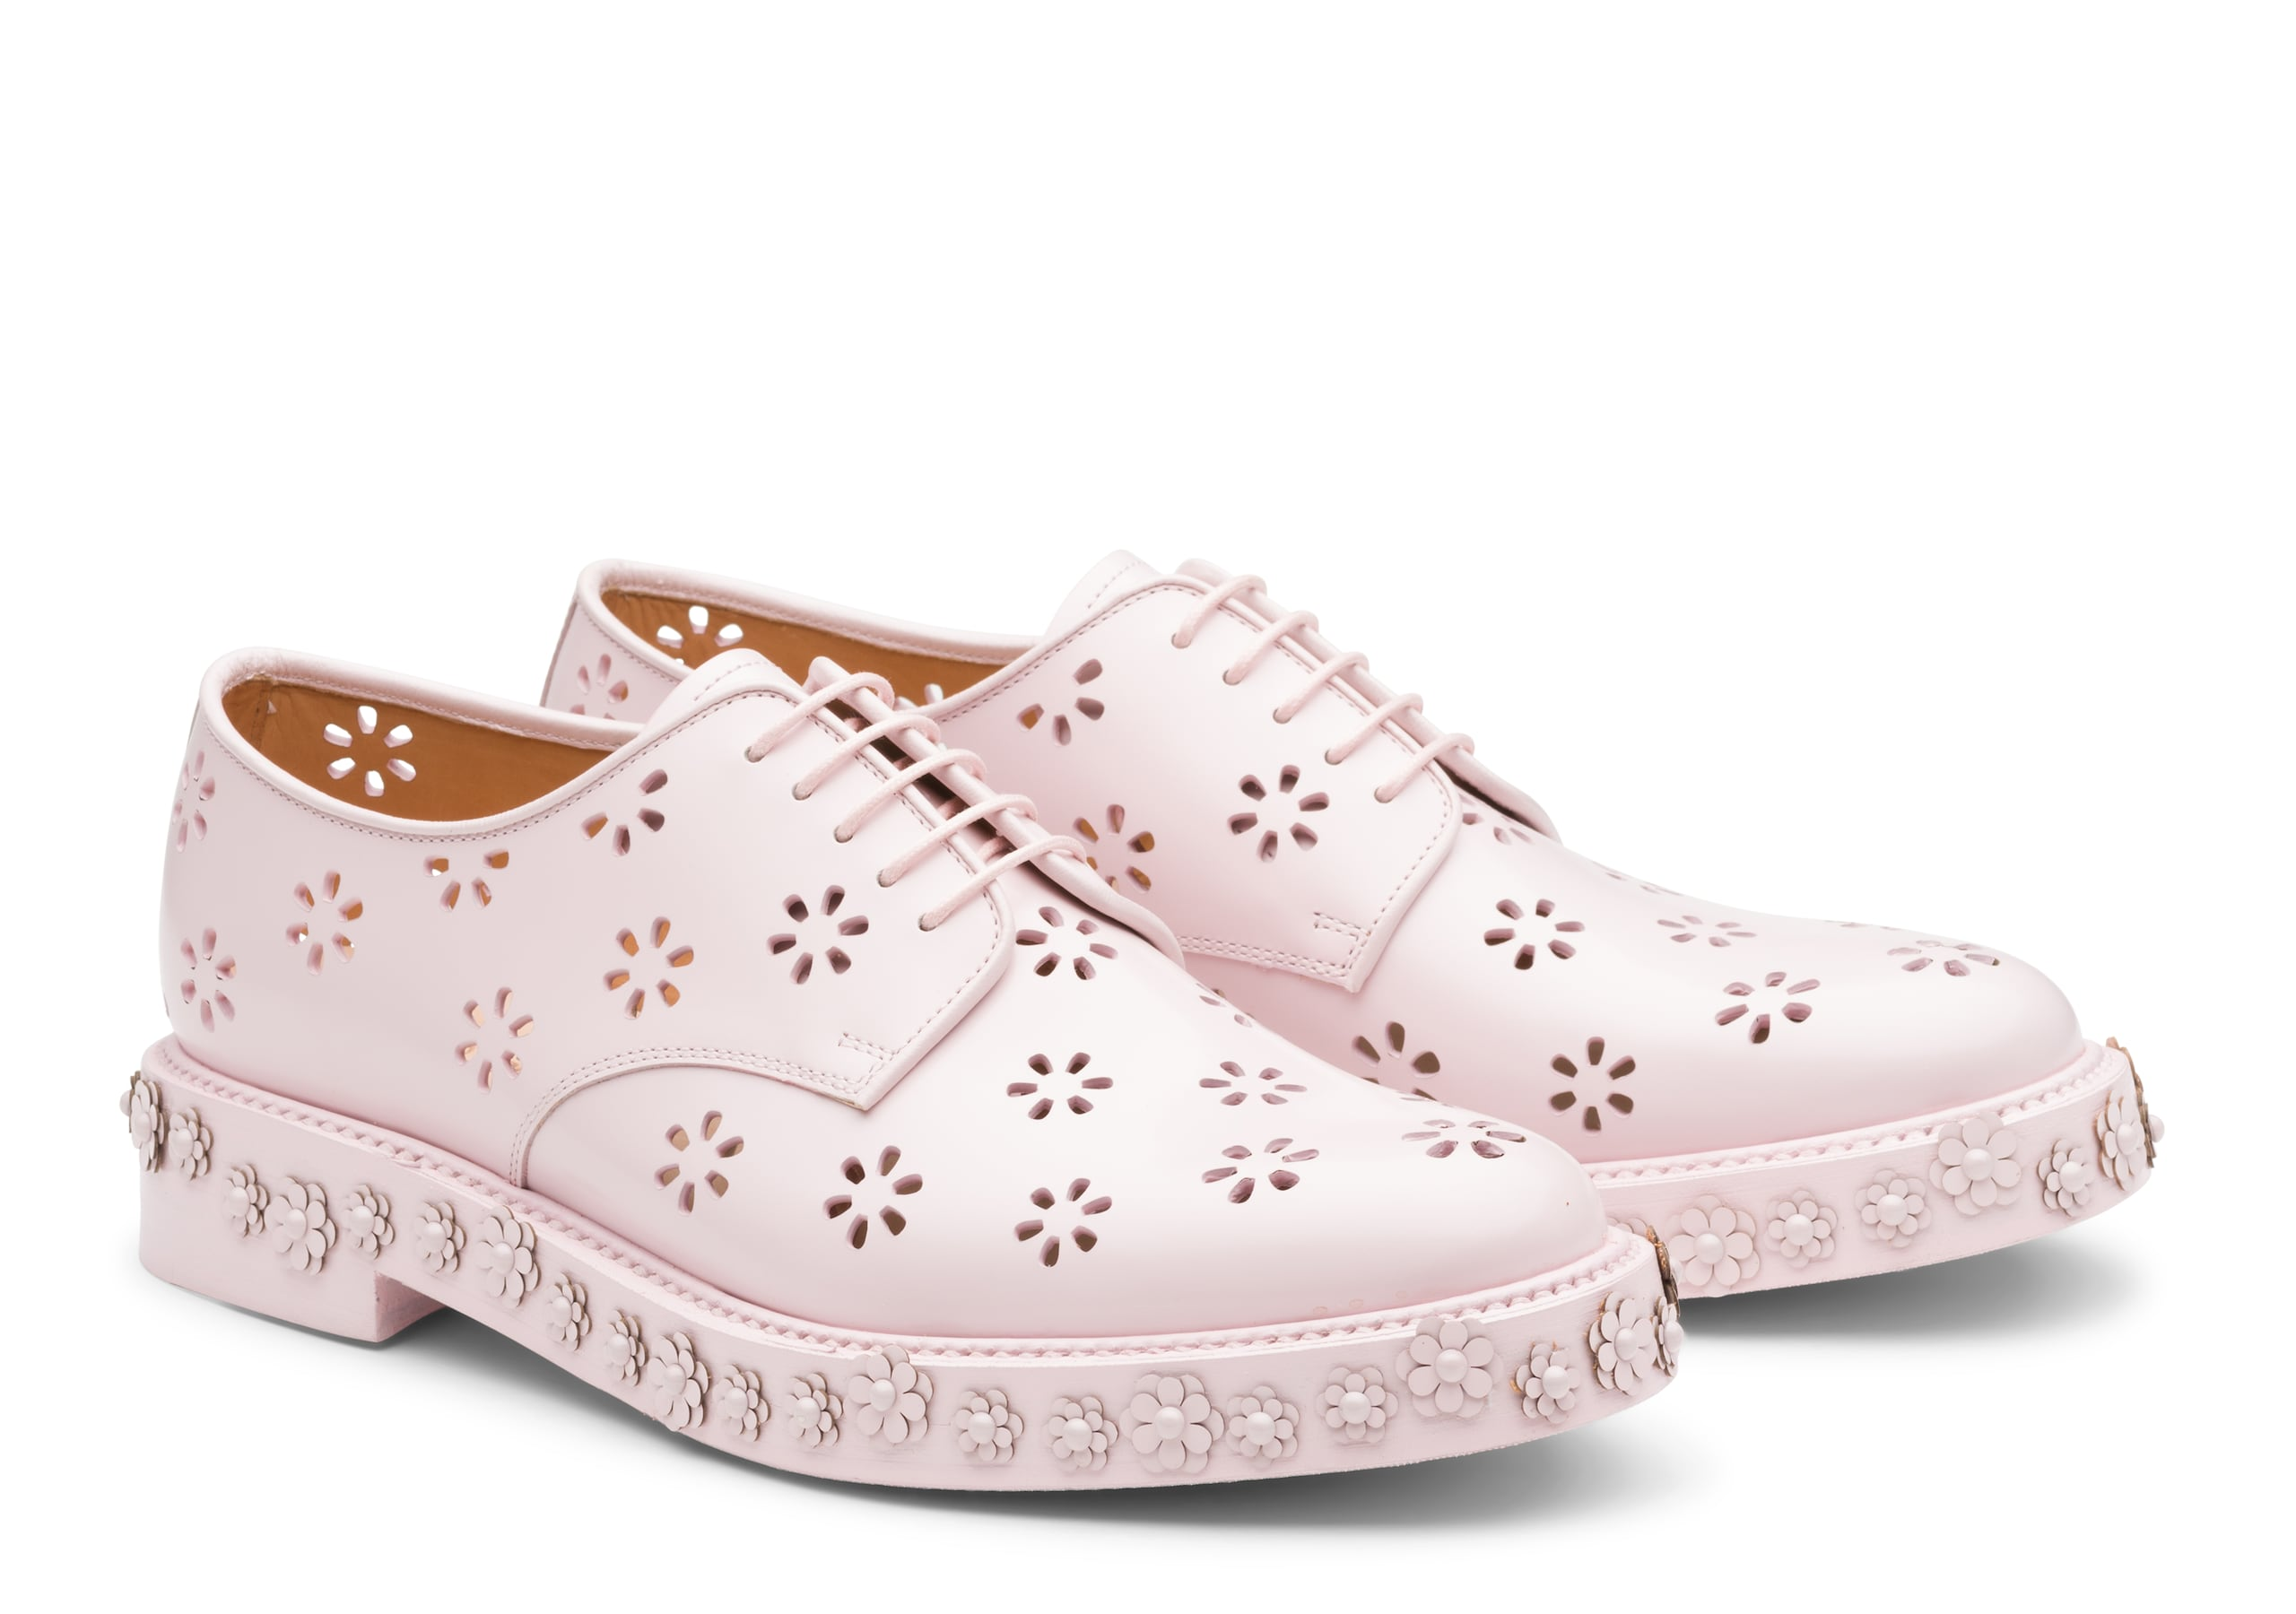 Shannon 21 Church's Derby cloutée en cuir verni  Rose